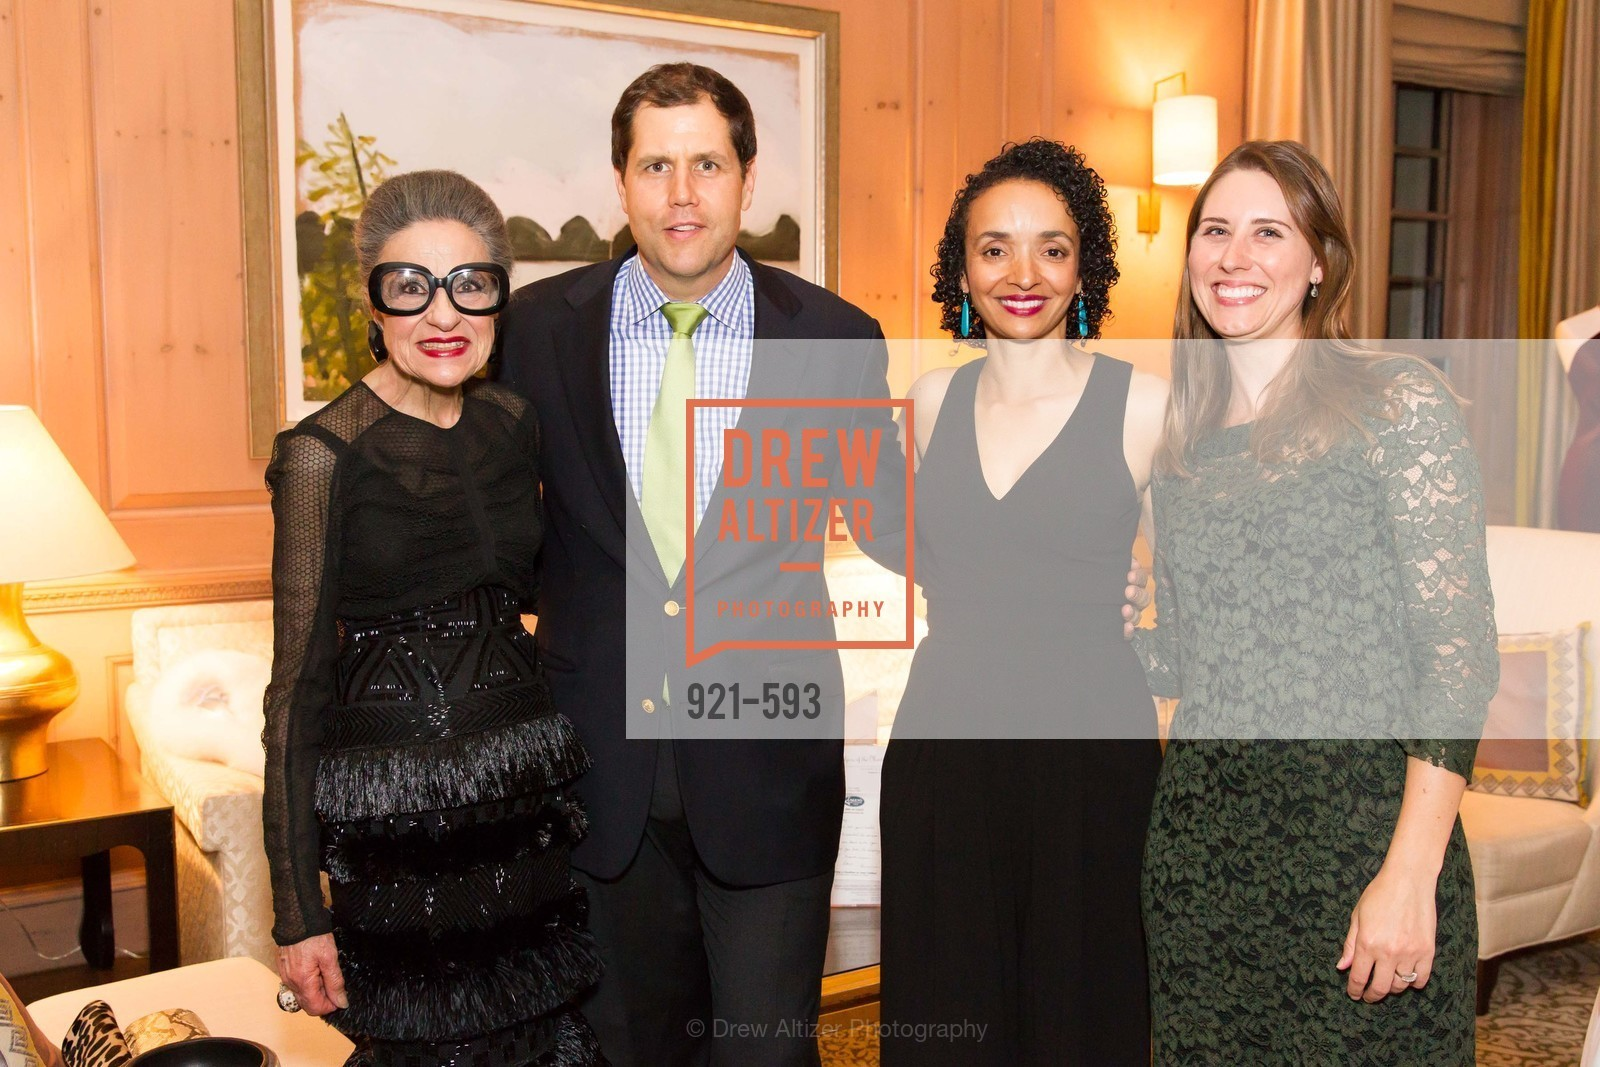 Joy Venturini Bianchi, Drew Altizer, Camille Hayes, Jami Ying, COUTURE FOR A CAUSE, US, October 4th, 2014,Drew Altizer, Drew Altizer Photography, full-service agency, private events, San Francisco photographer, photographer california